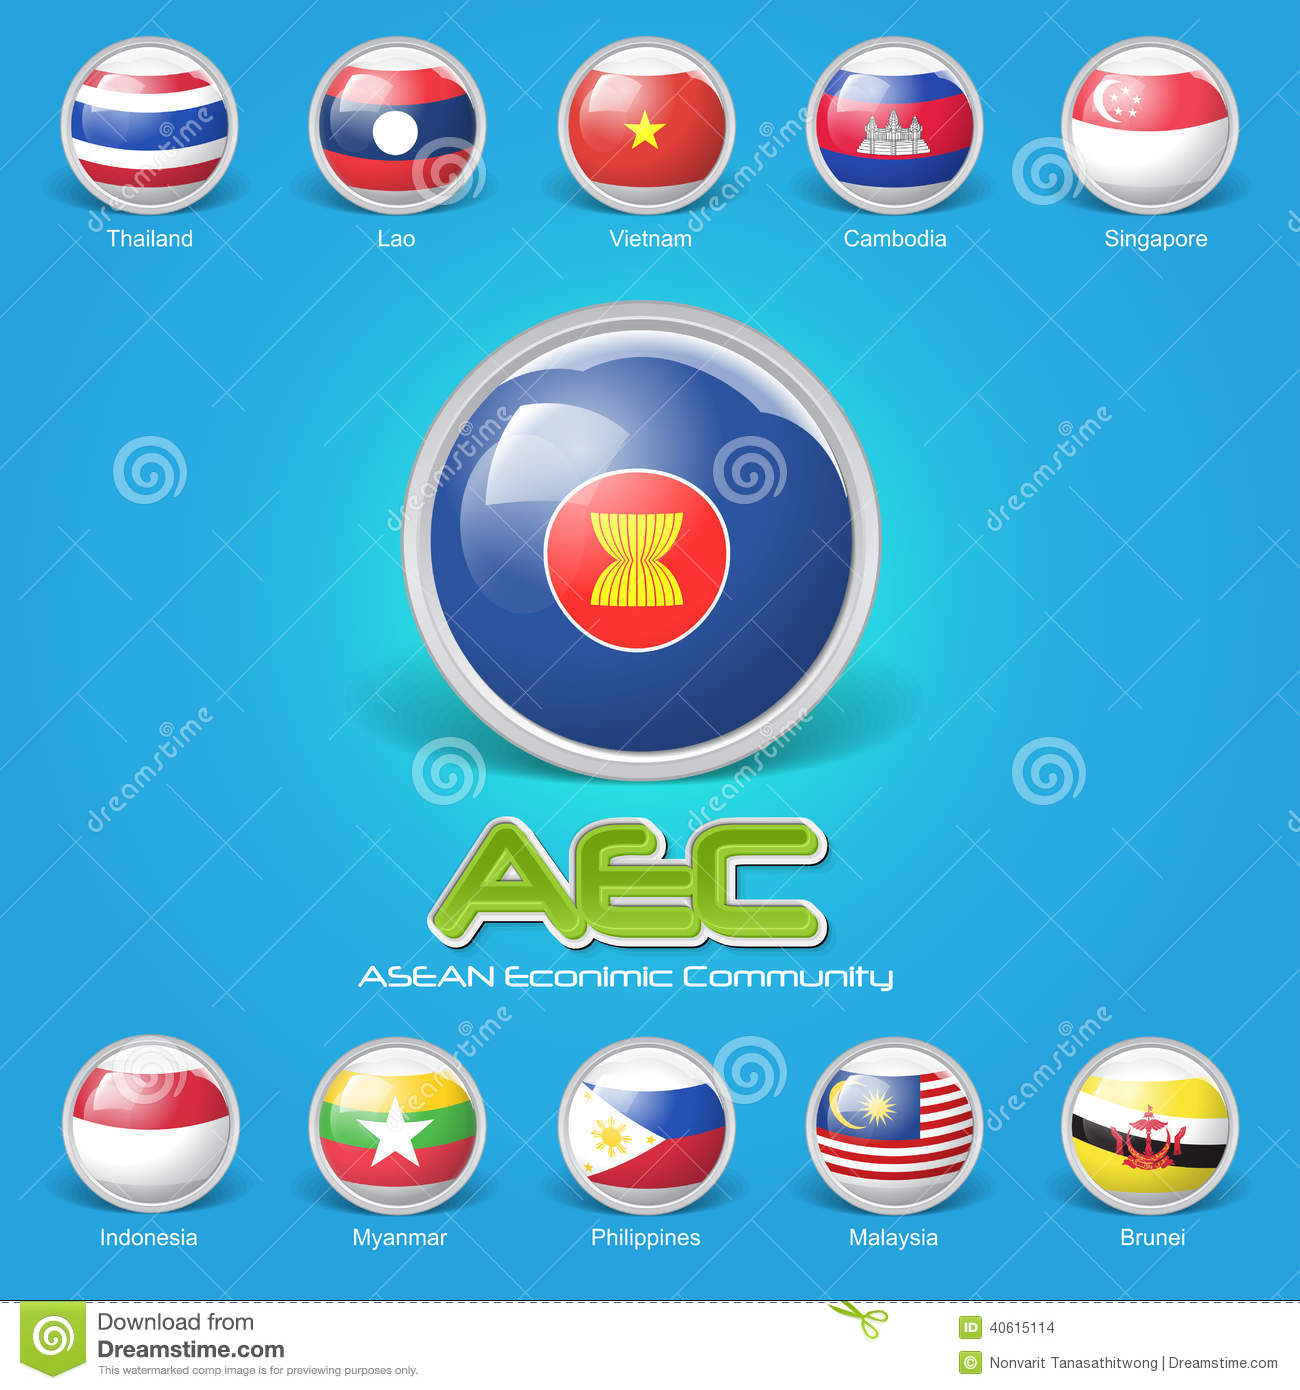 asean community The asean community has three pillars, namely the asean political-security  community (apsc), the asean economic community (aec) and the asean.